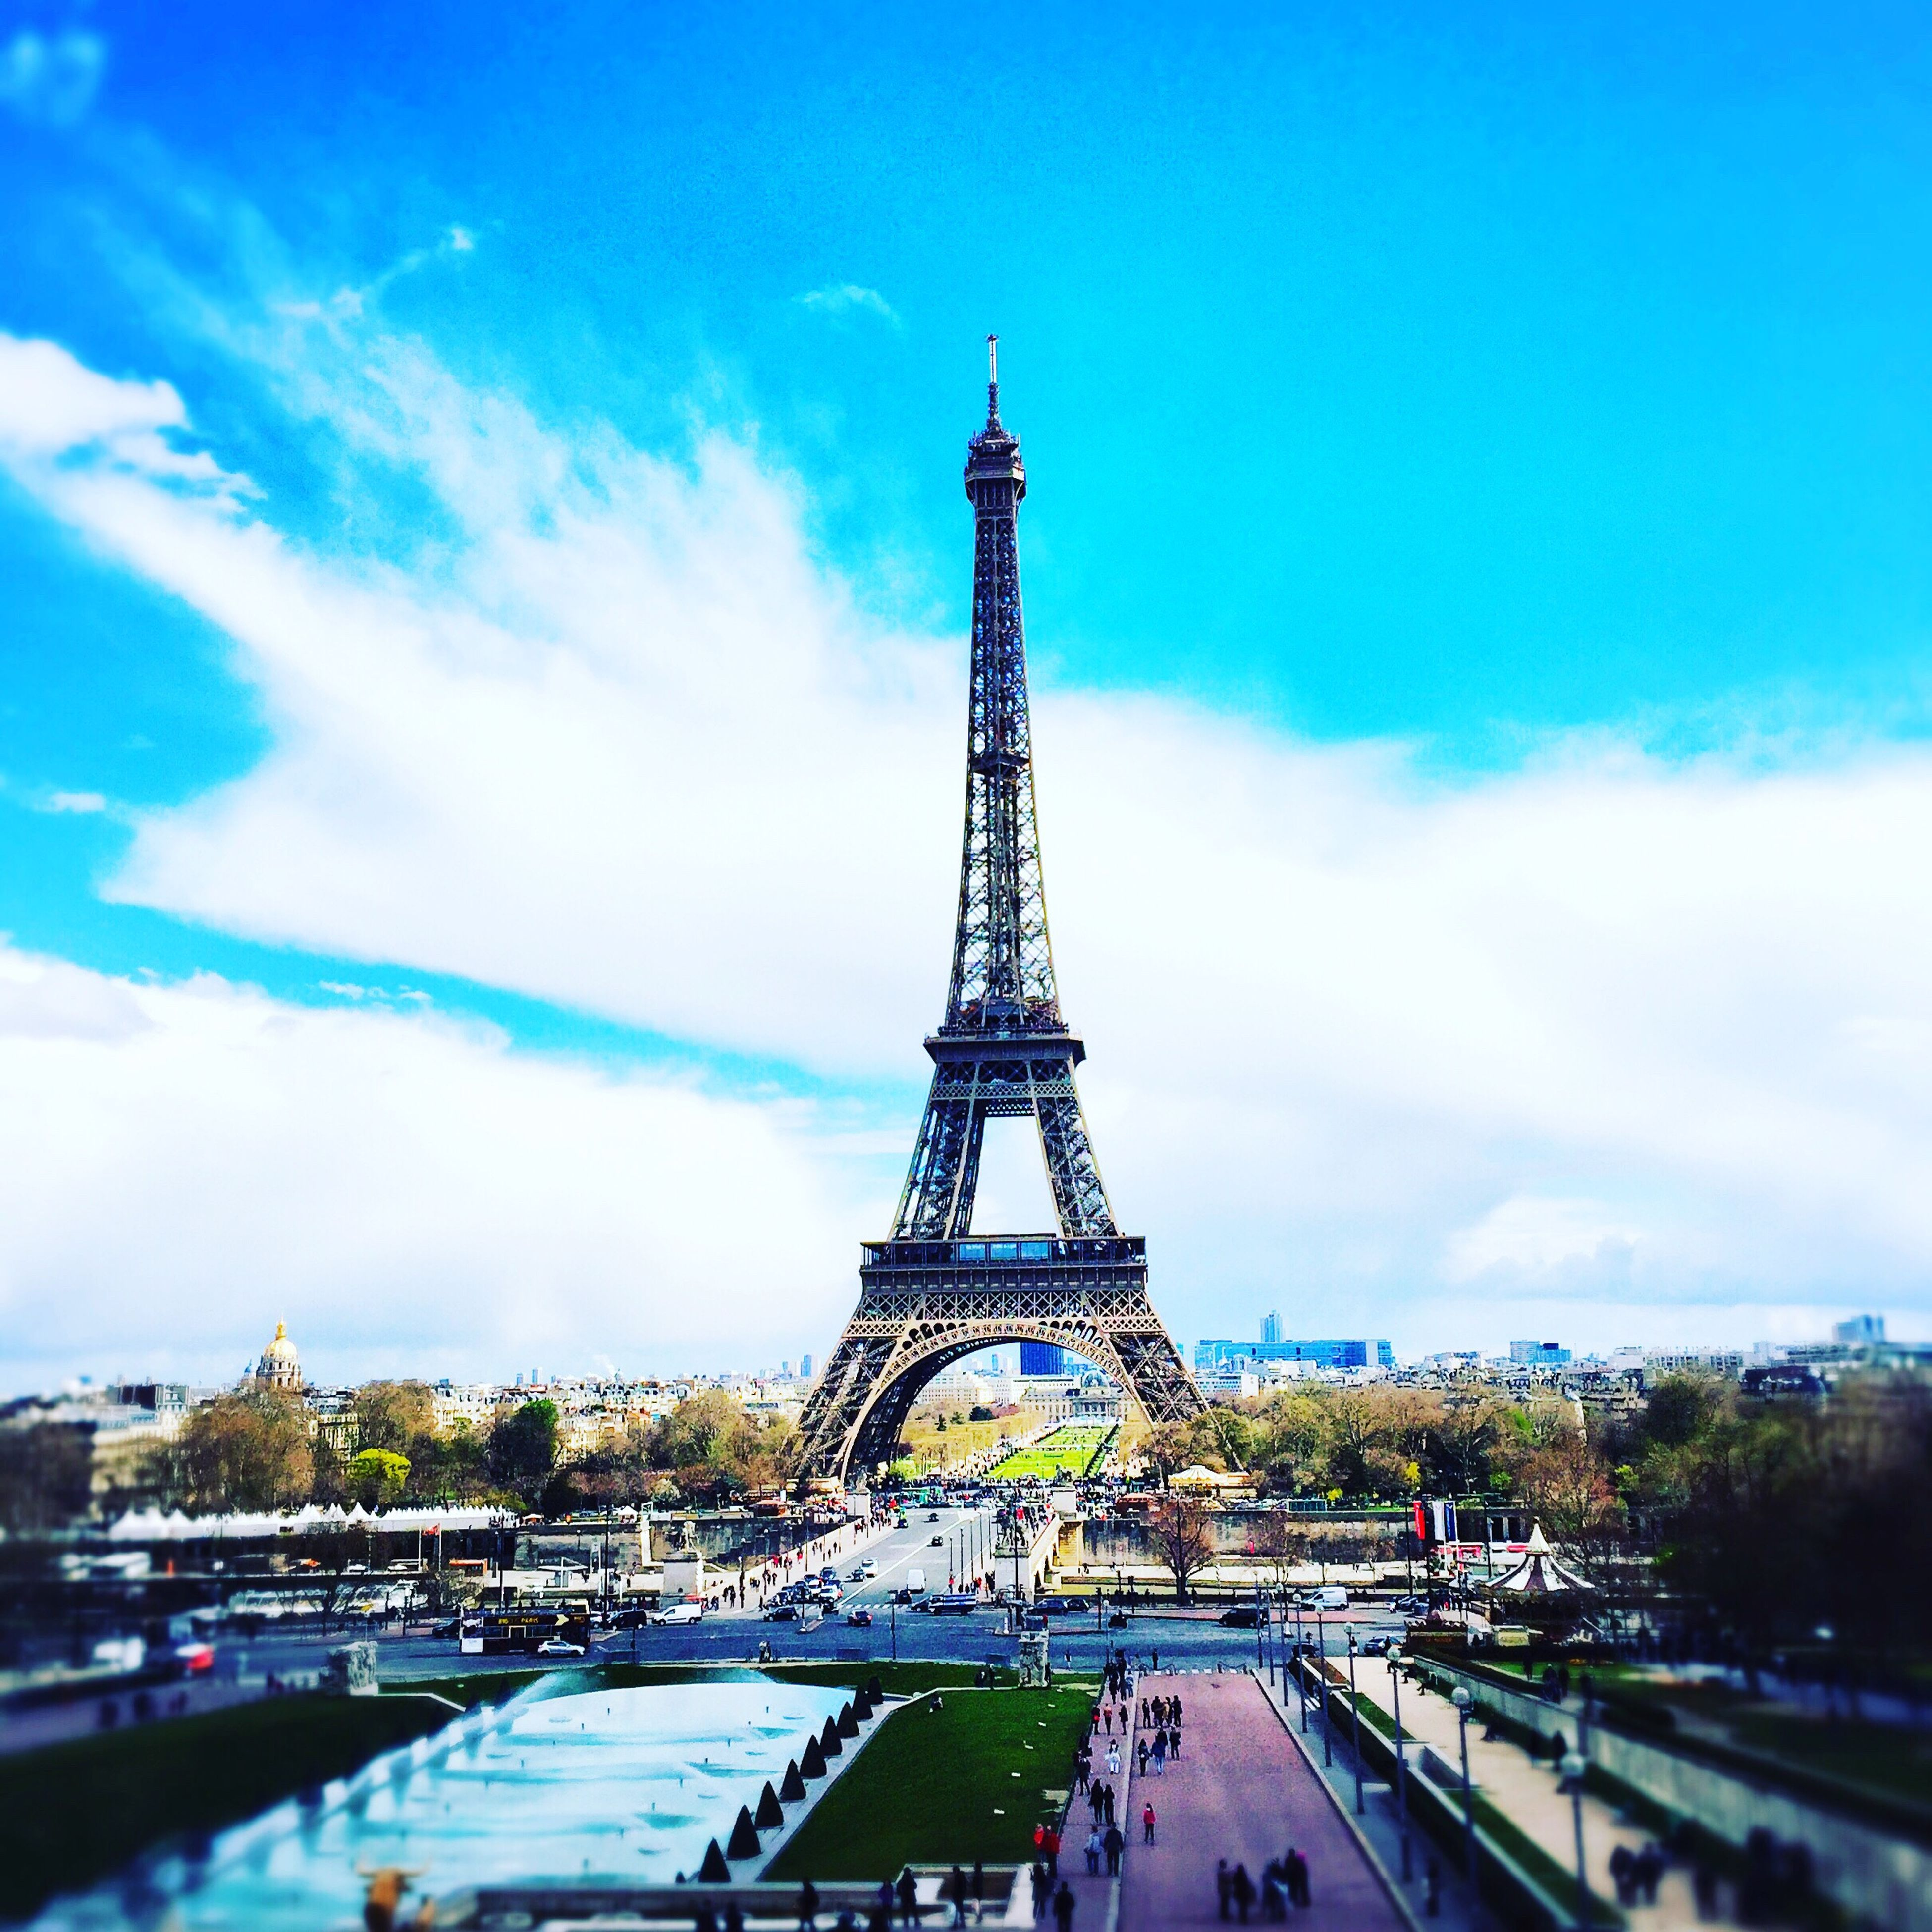 eiffel tower, architecture, built structure, sky, tower, tall - high, cloud - sky, famous place, metal, travel destinations, city, capital cities, building exterior, culture, international landmark, travel, transportation, tourism, road, tree